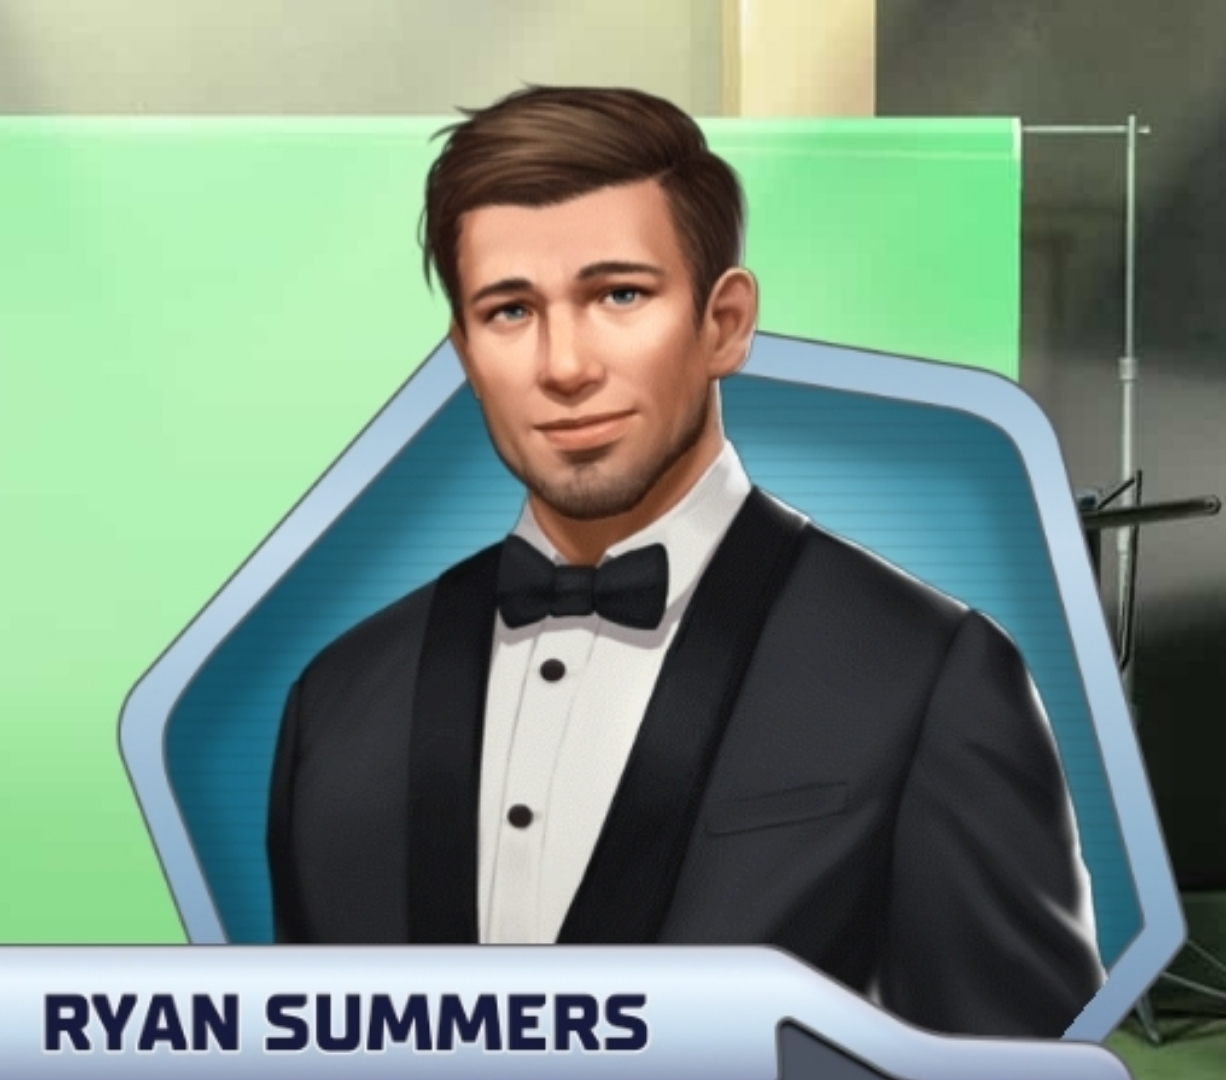 File:Ryan Summers.jpg